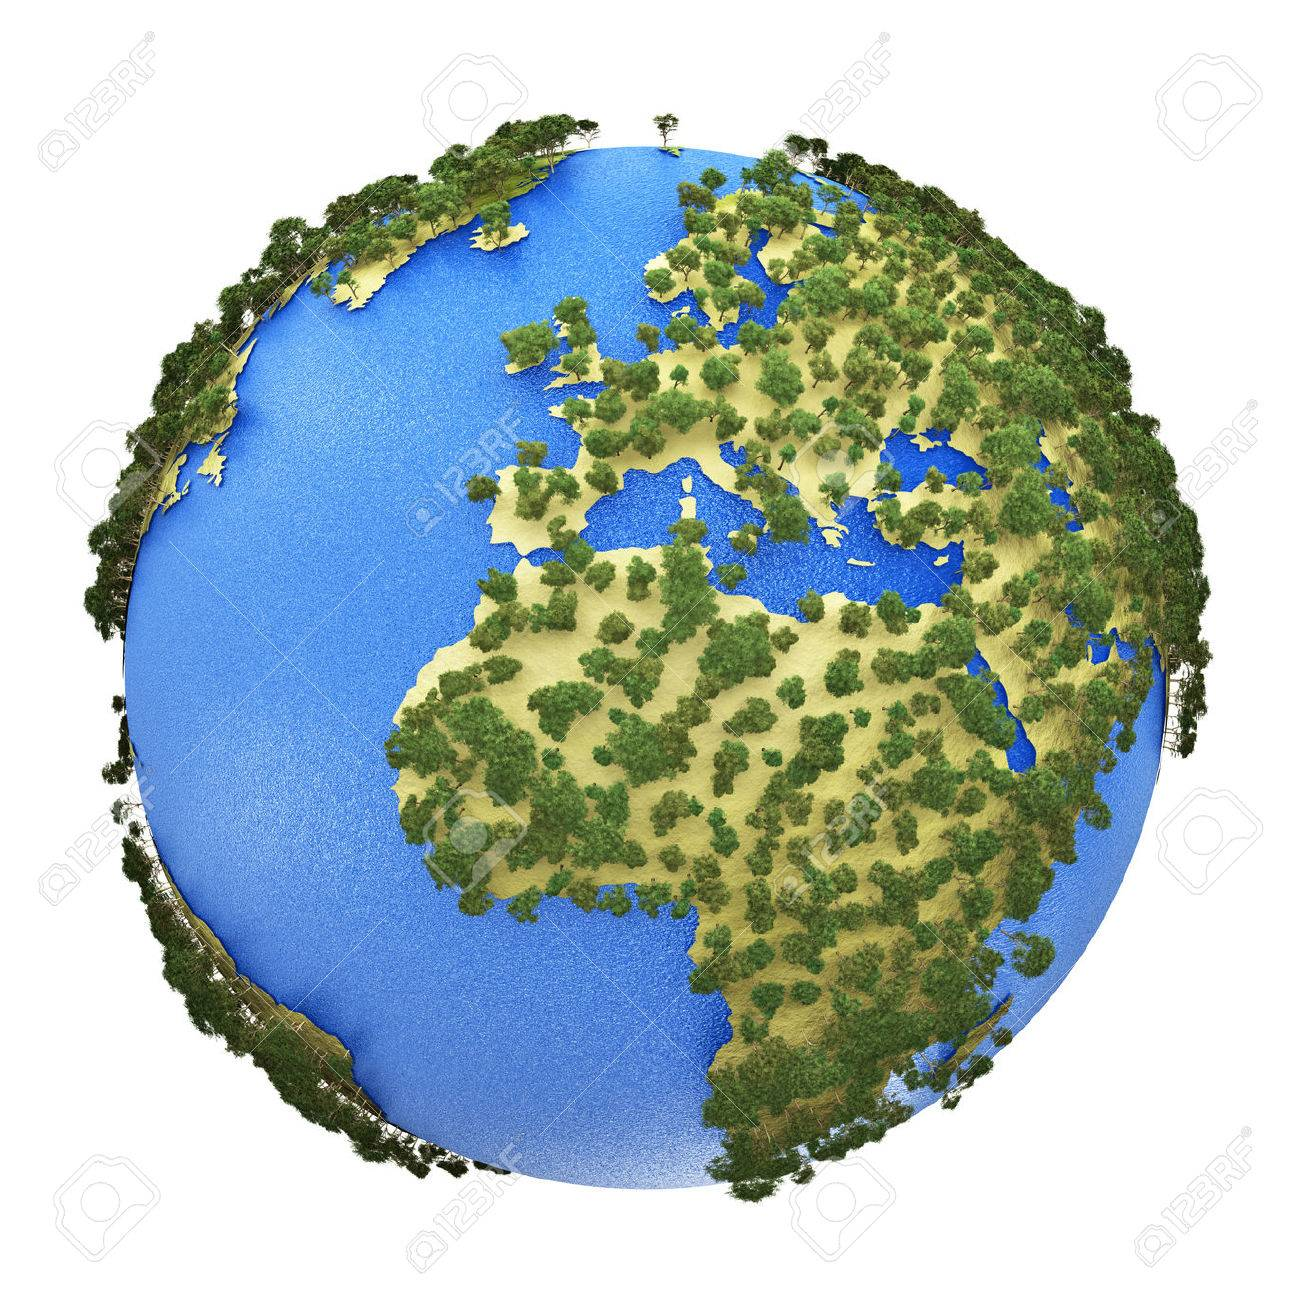 Creative abstract global ecology and environment protection business creative abstract global ecology and environment protection business concept mini green earth planet globe with world gumiabroncs Images